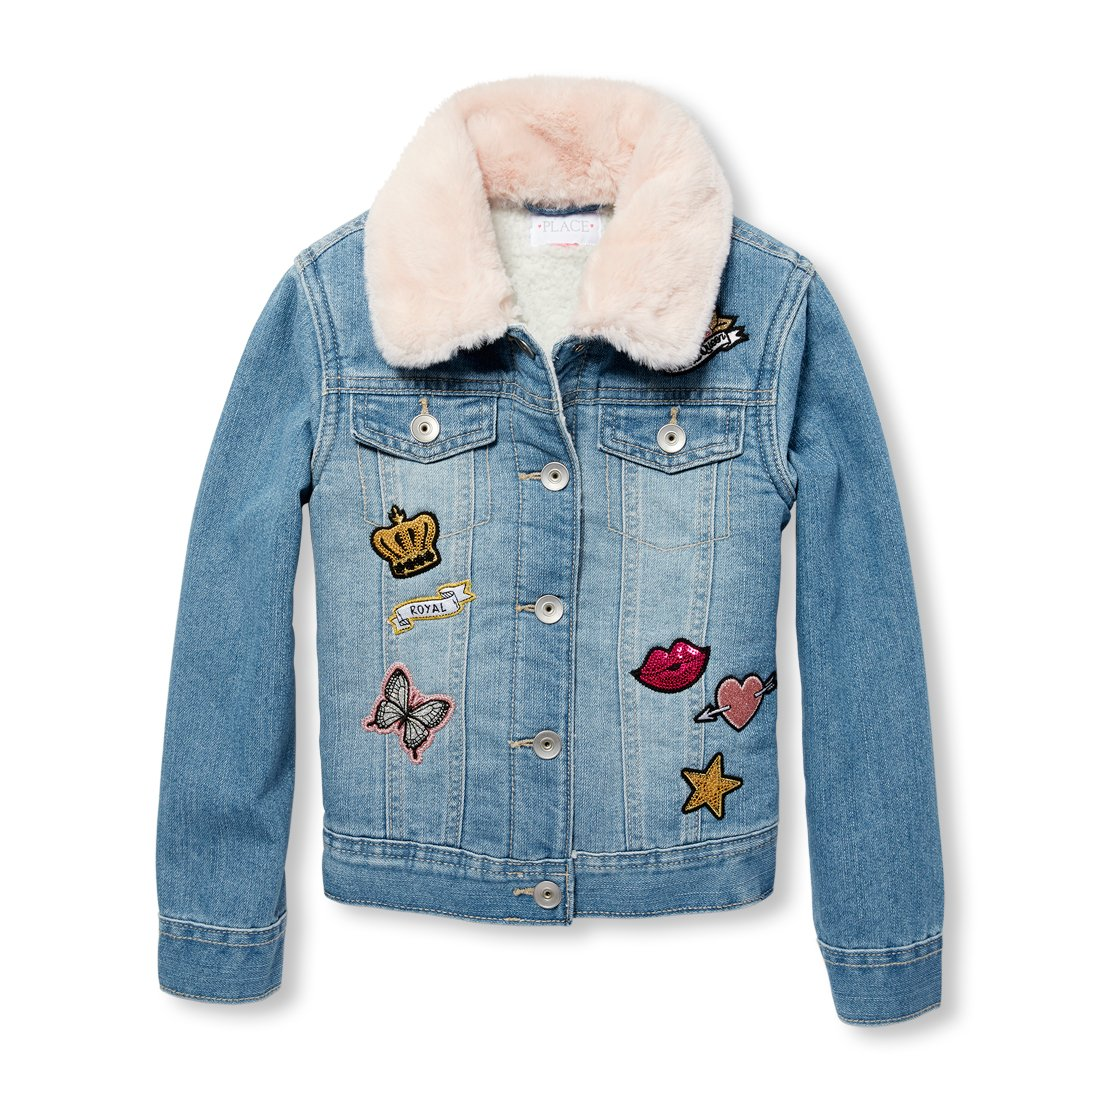 The Children's Place Big Girls' Denim Jacket, BBYBLUEDNM, XS (4) by The Children's Place